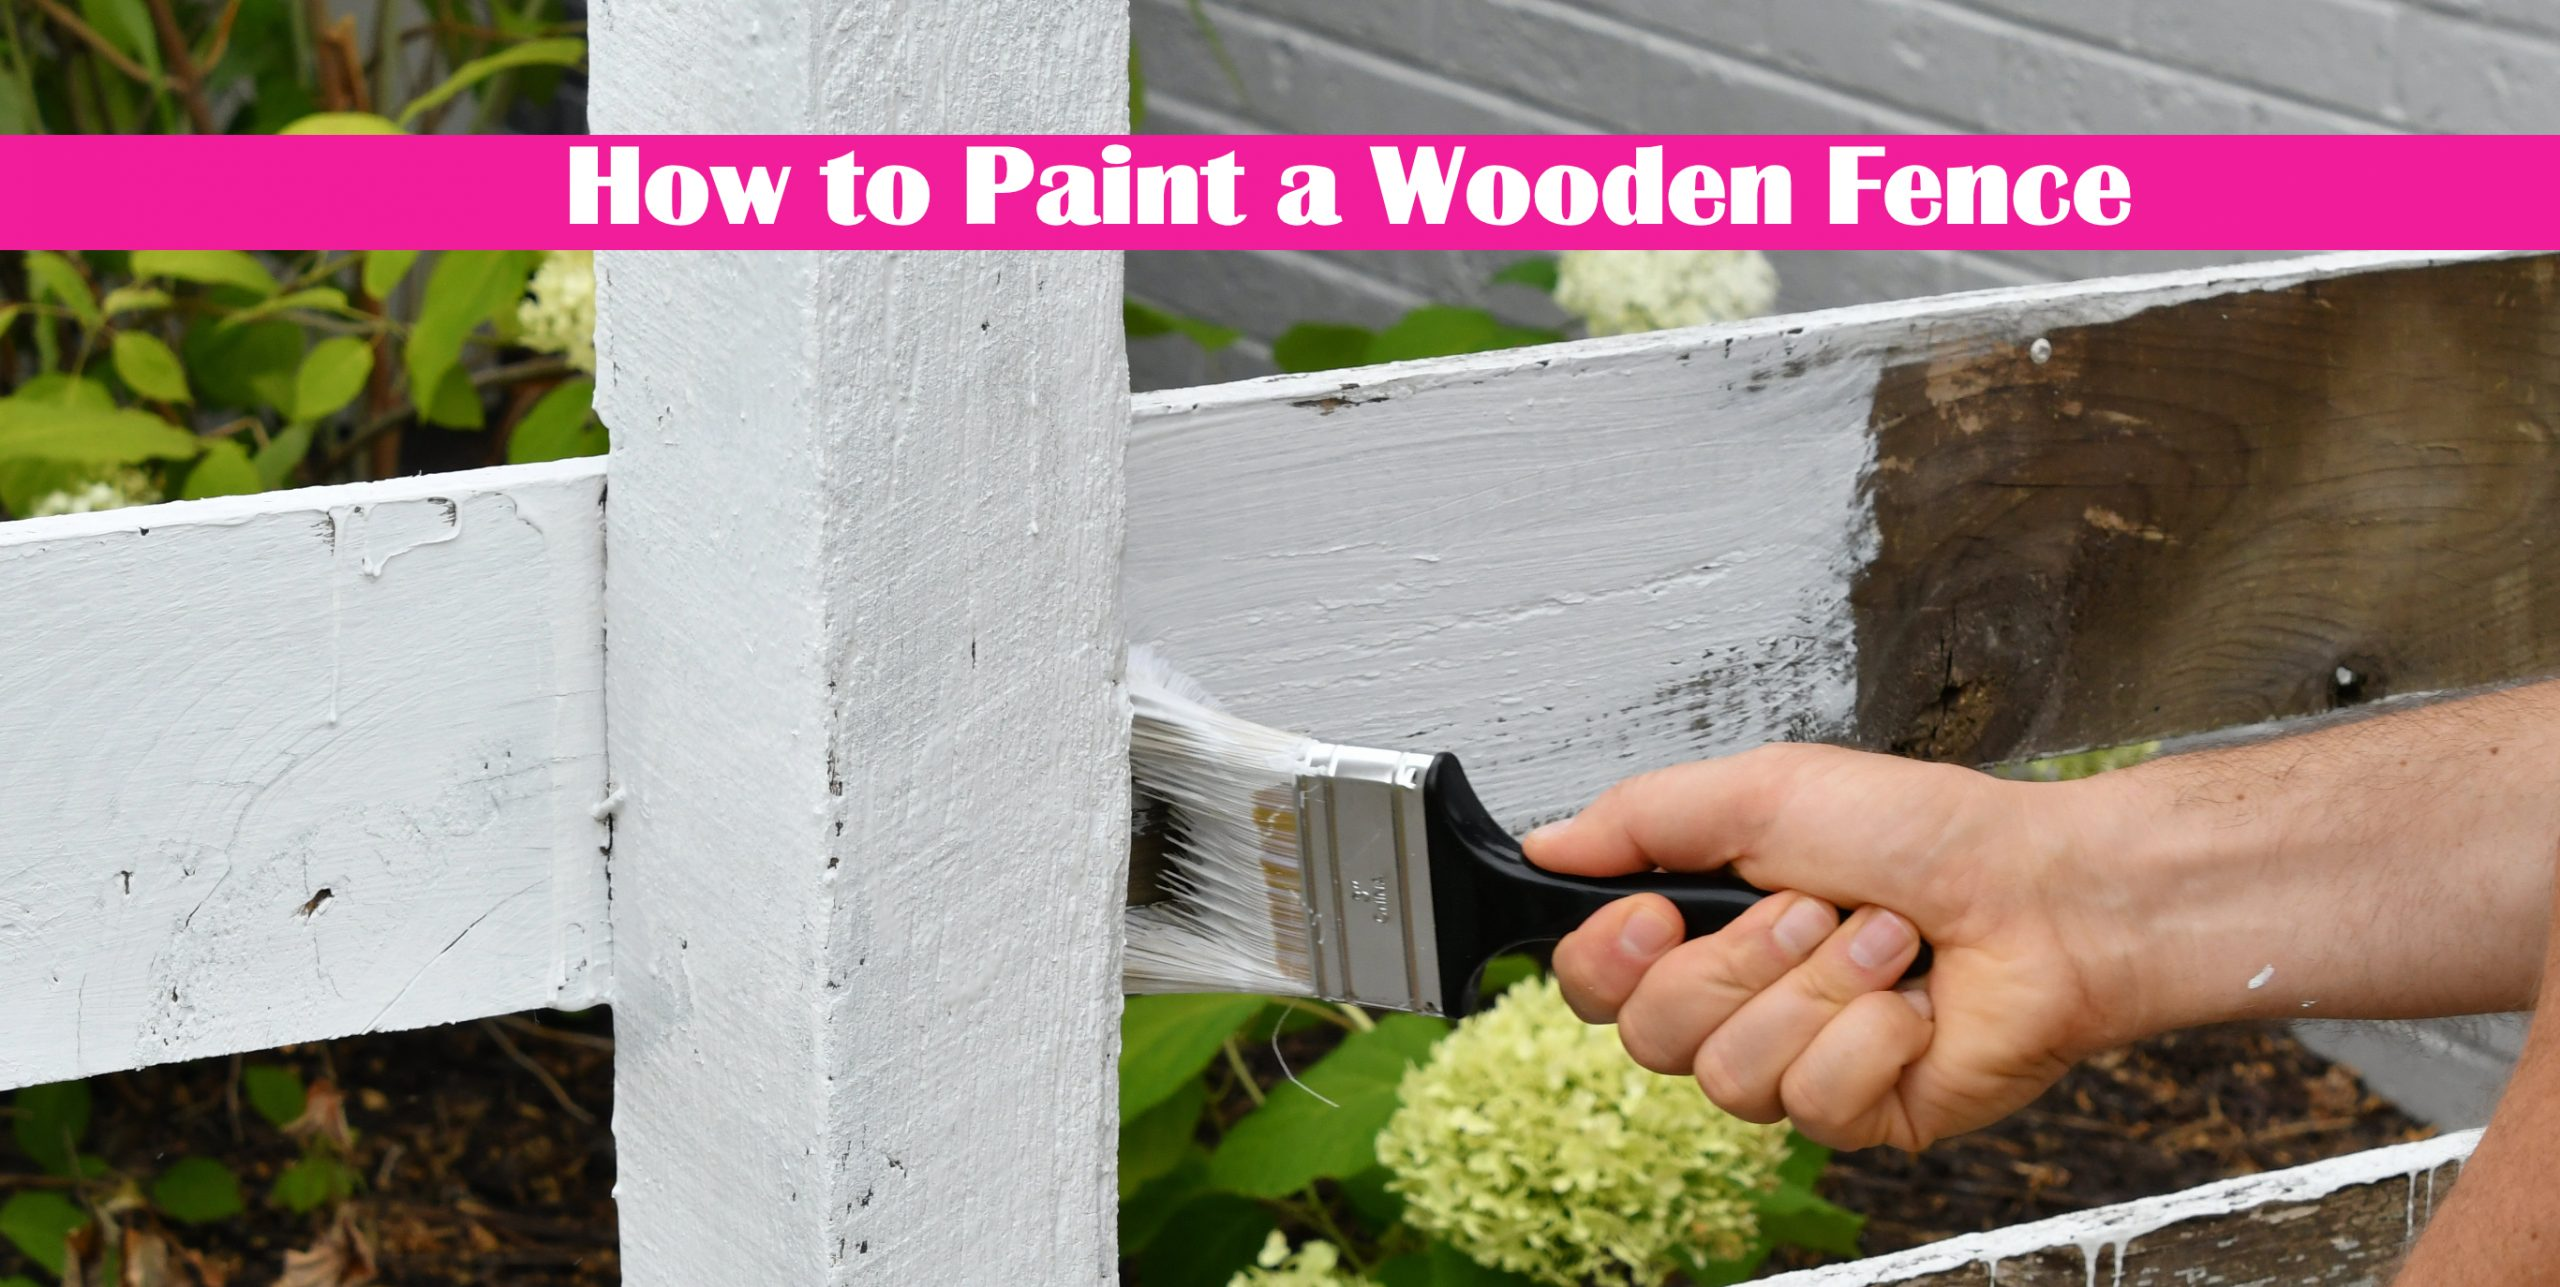 How to Paint a Wooden Fence: Prevent Peeling Paint